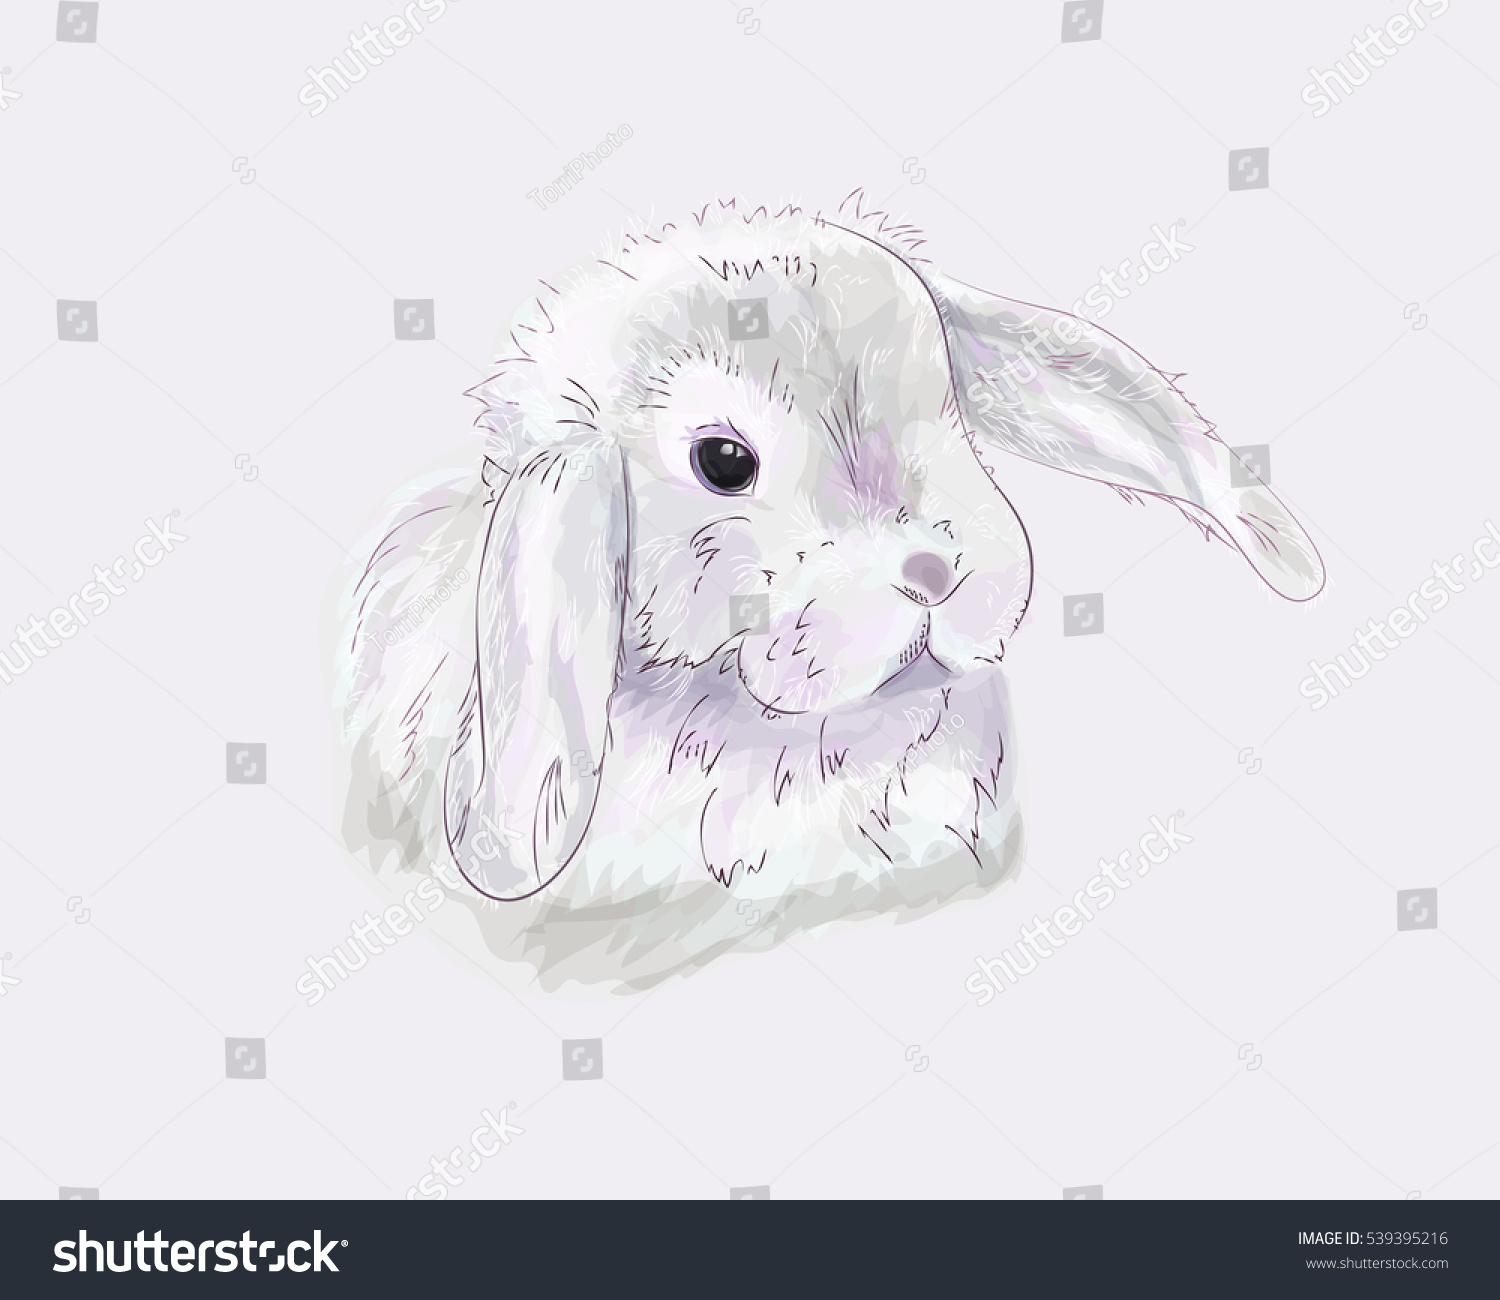 https://www.shutterstock.com/image-illustration/hand-drawn-cute-easter-bunny-pastel-539395216